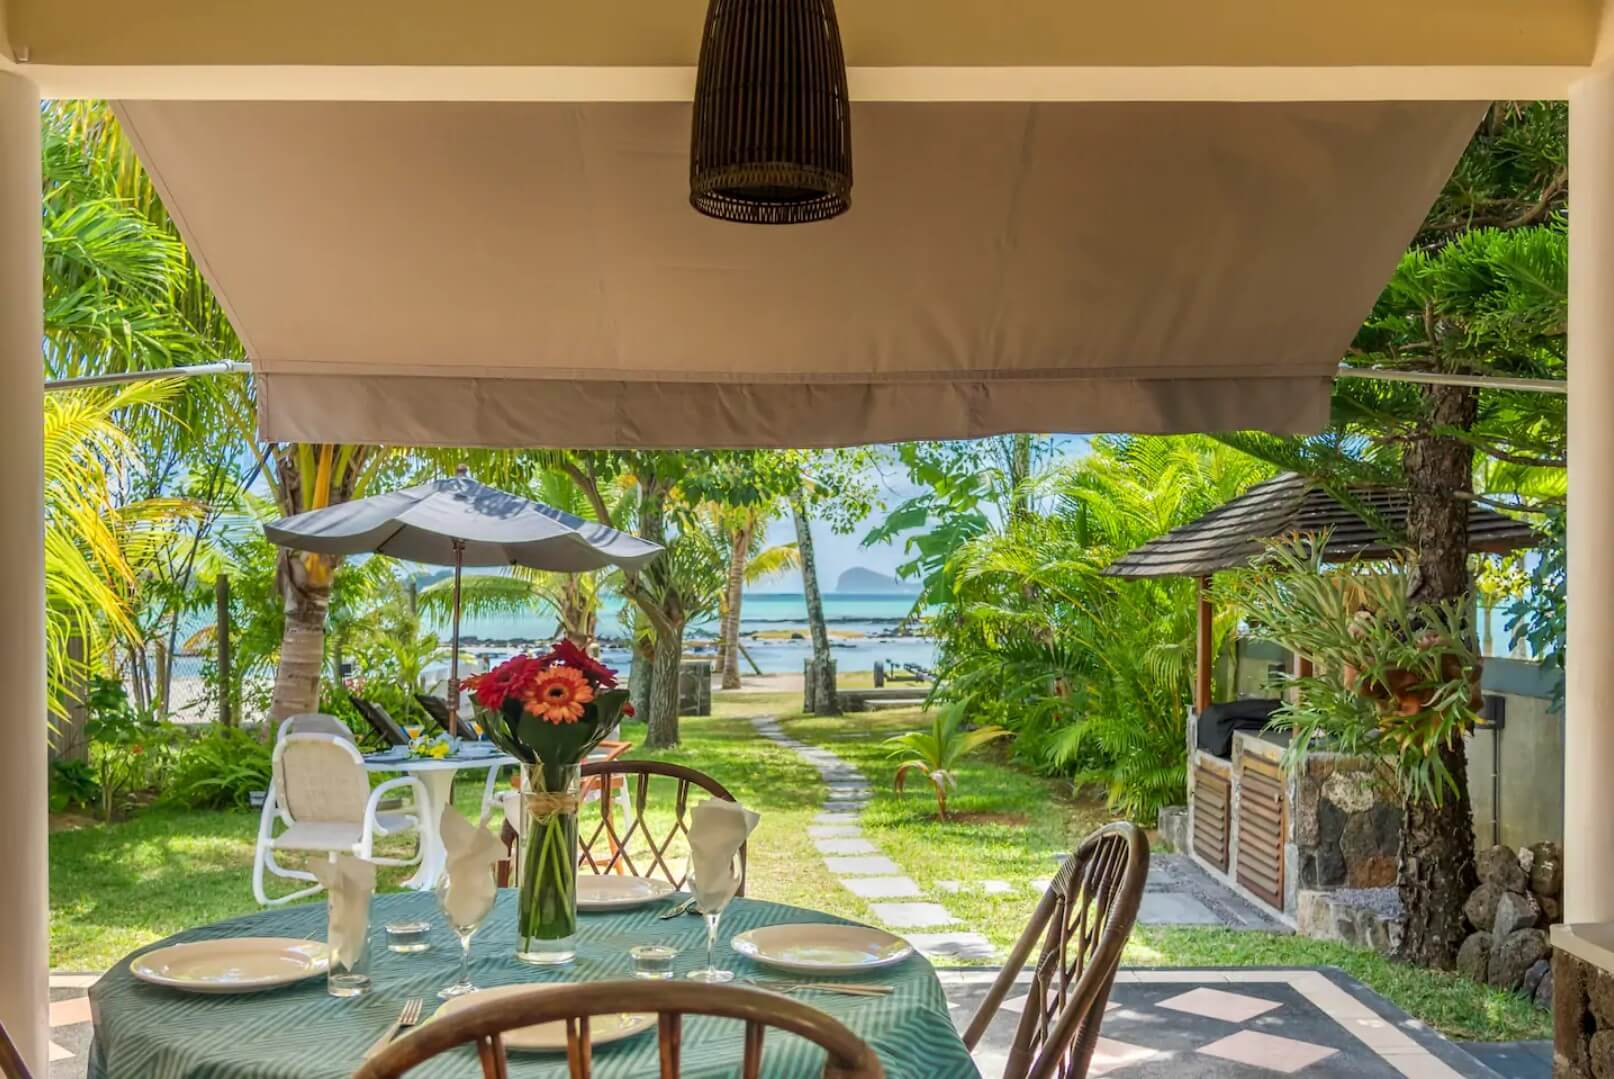 Best Beach Bungalow in Mauritius: Quaint Fishing Village Beach Bungalow in Grand Gaube